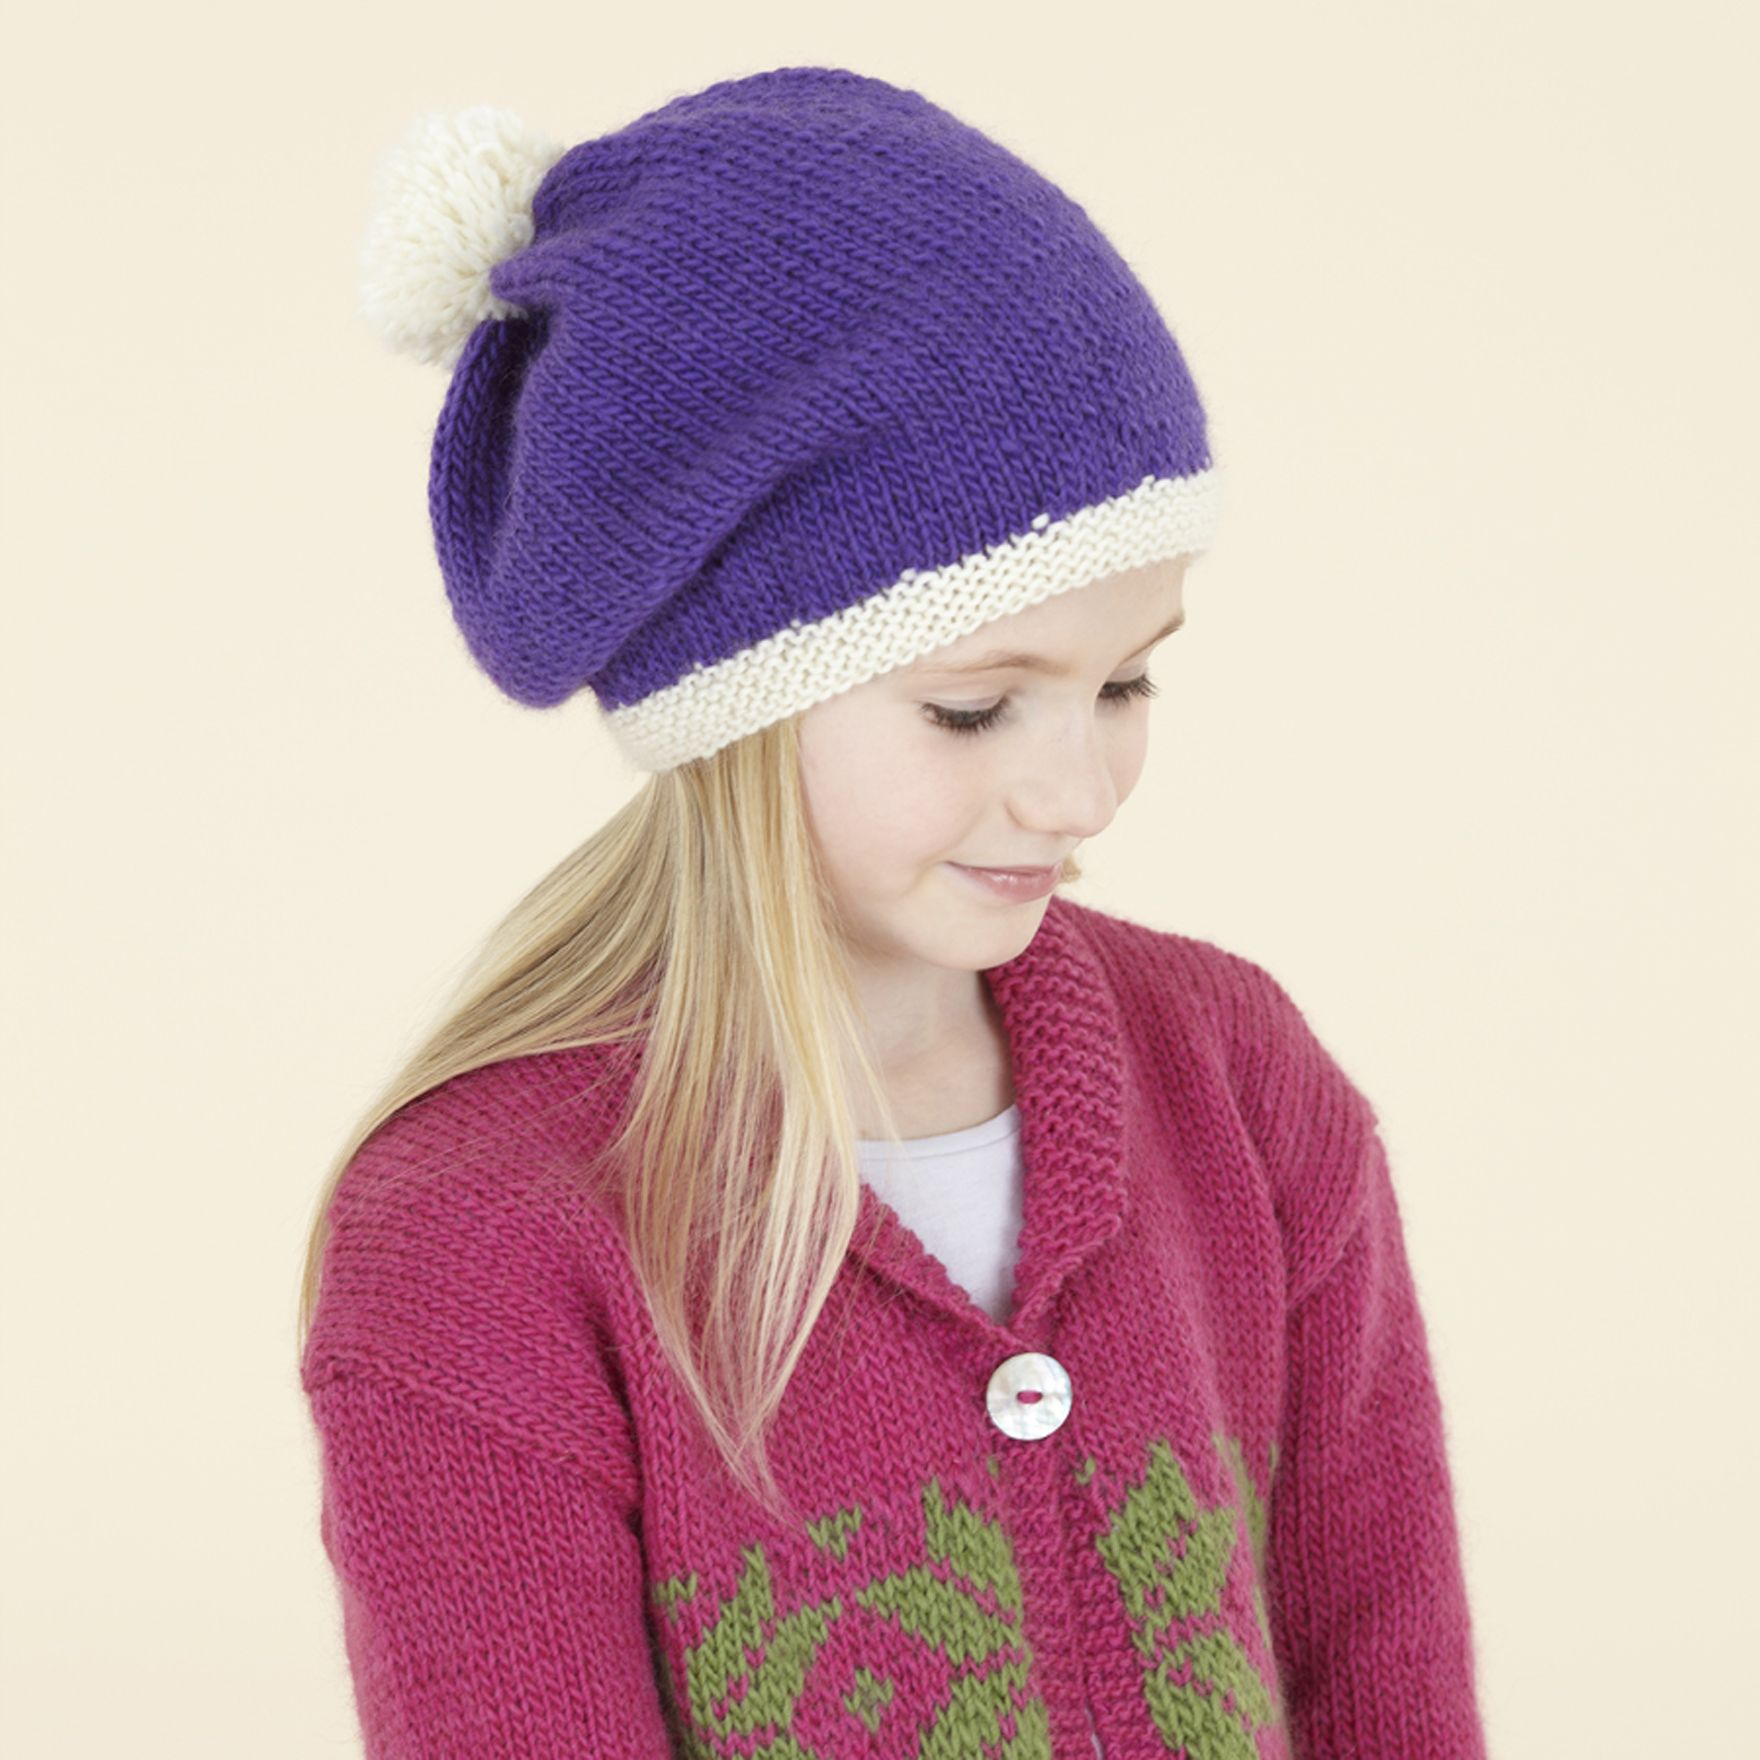 The Little London Girl Slouchy hat in Sublime Monty purple. Modern Aran hand knits in gorgeous colours.